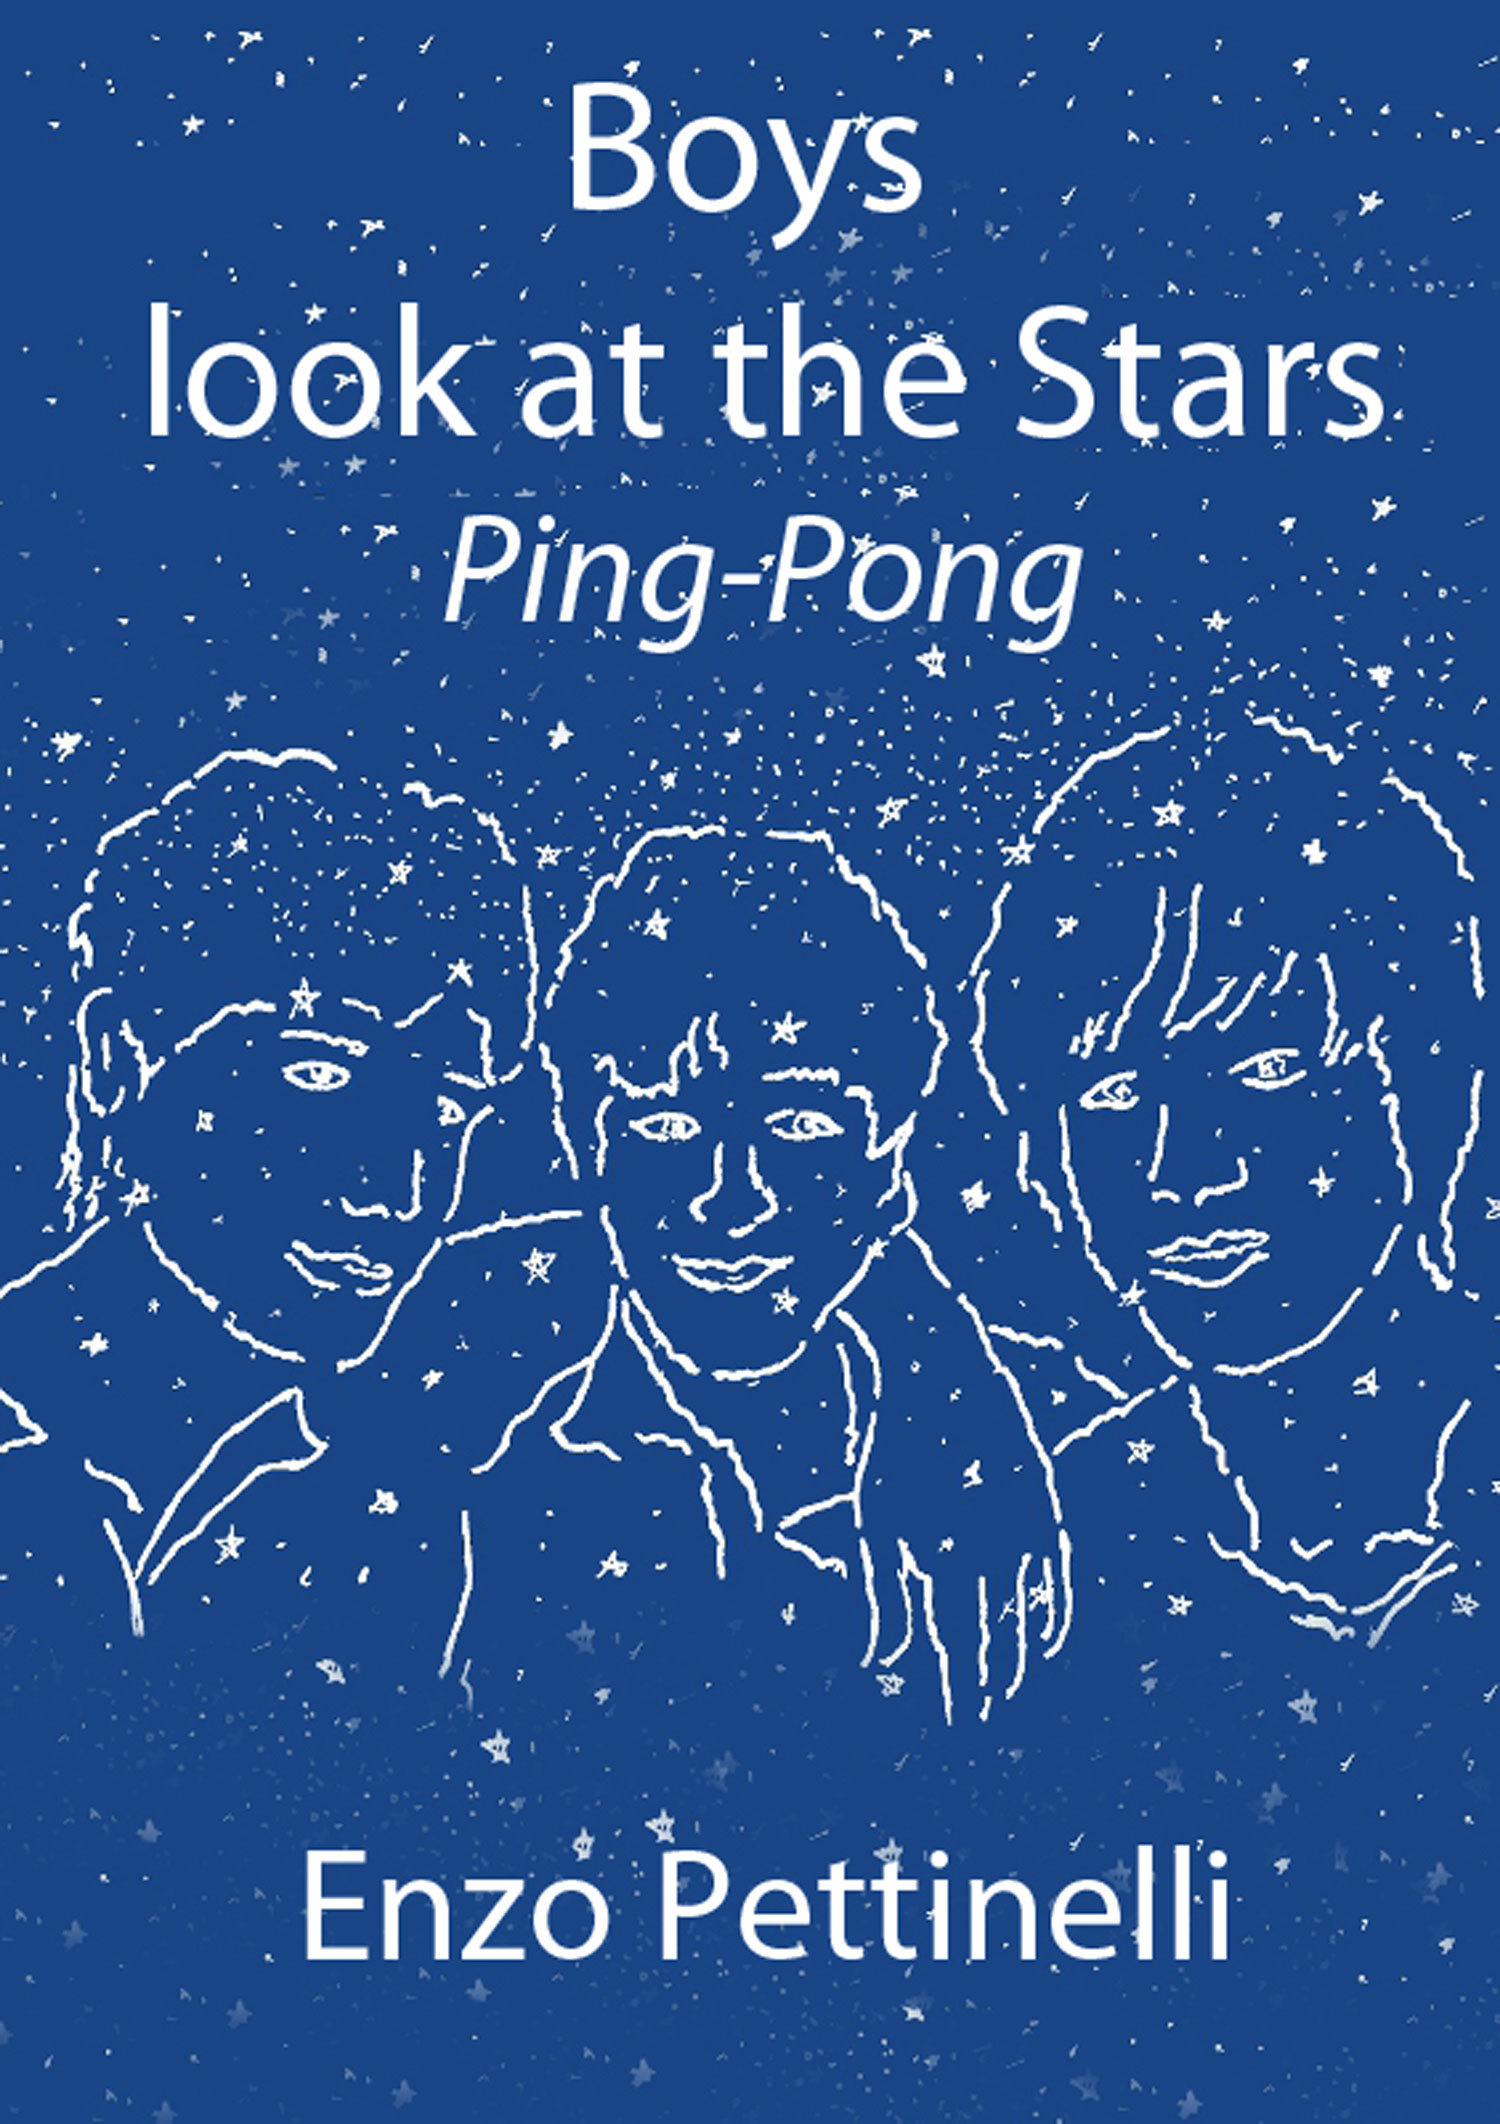 Boys look at the Stars: Ping-Pong